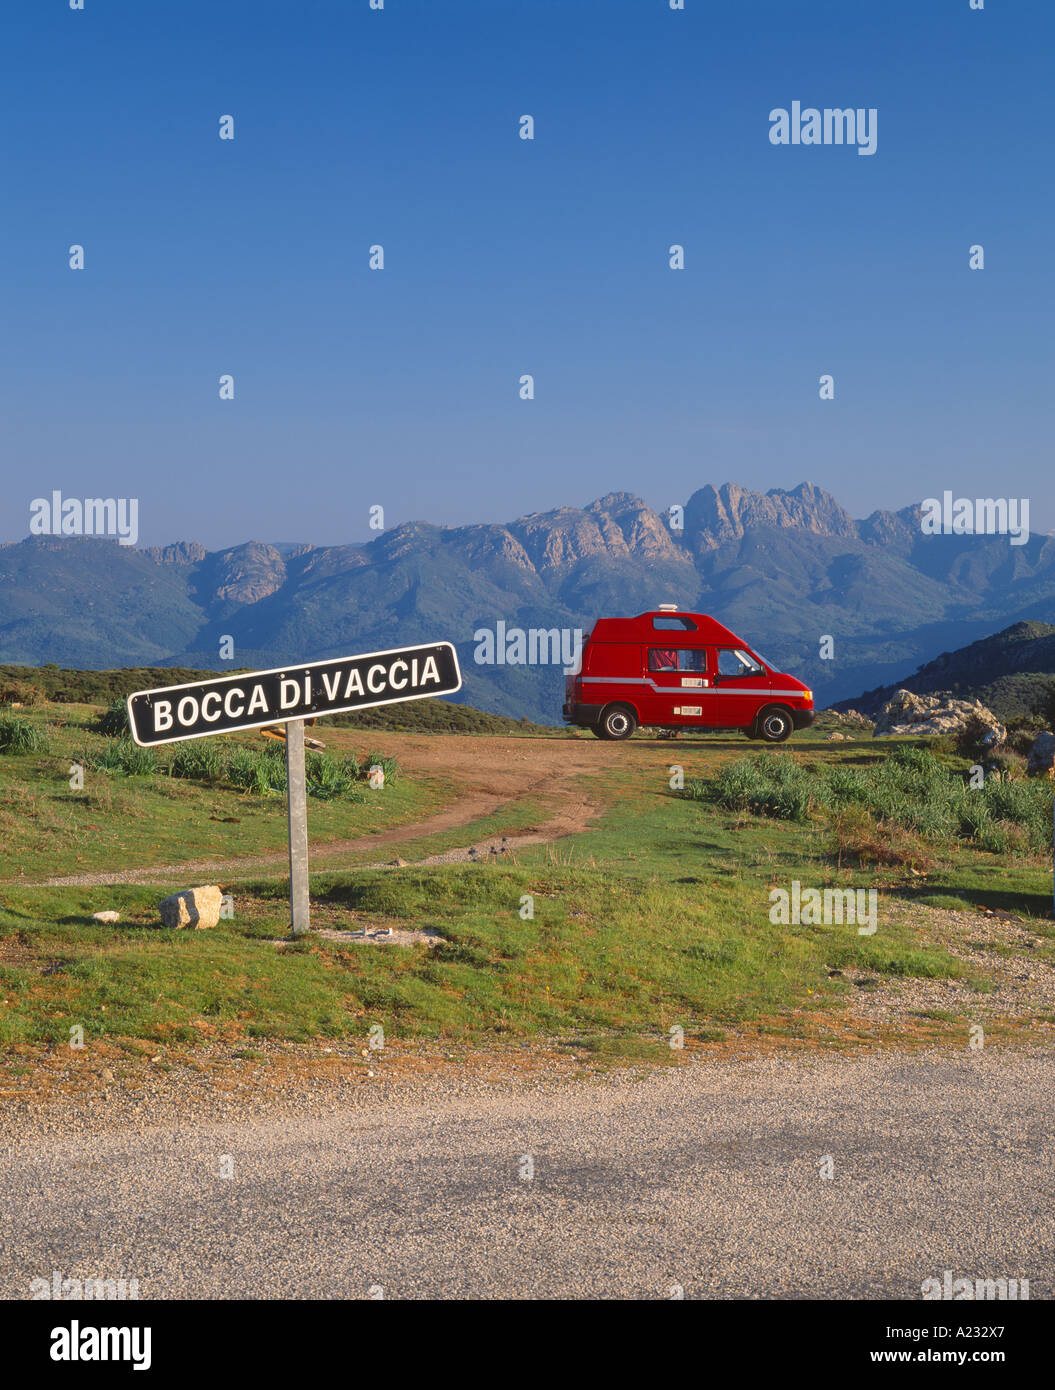 British motorhome parked on the Bocca di Vacca, Corse du Sud, Corsica, France - Stock Image